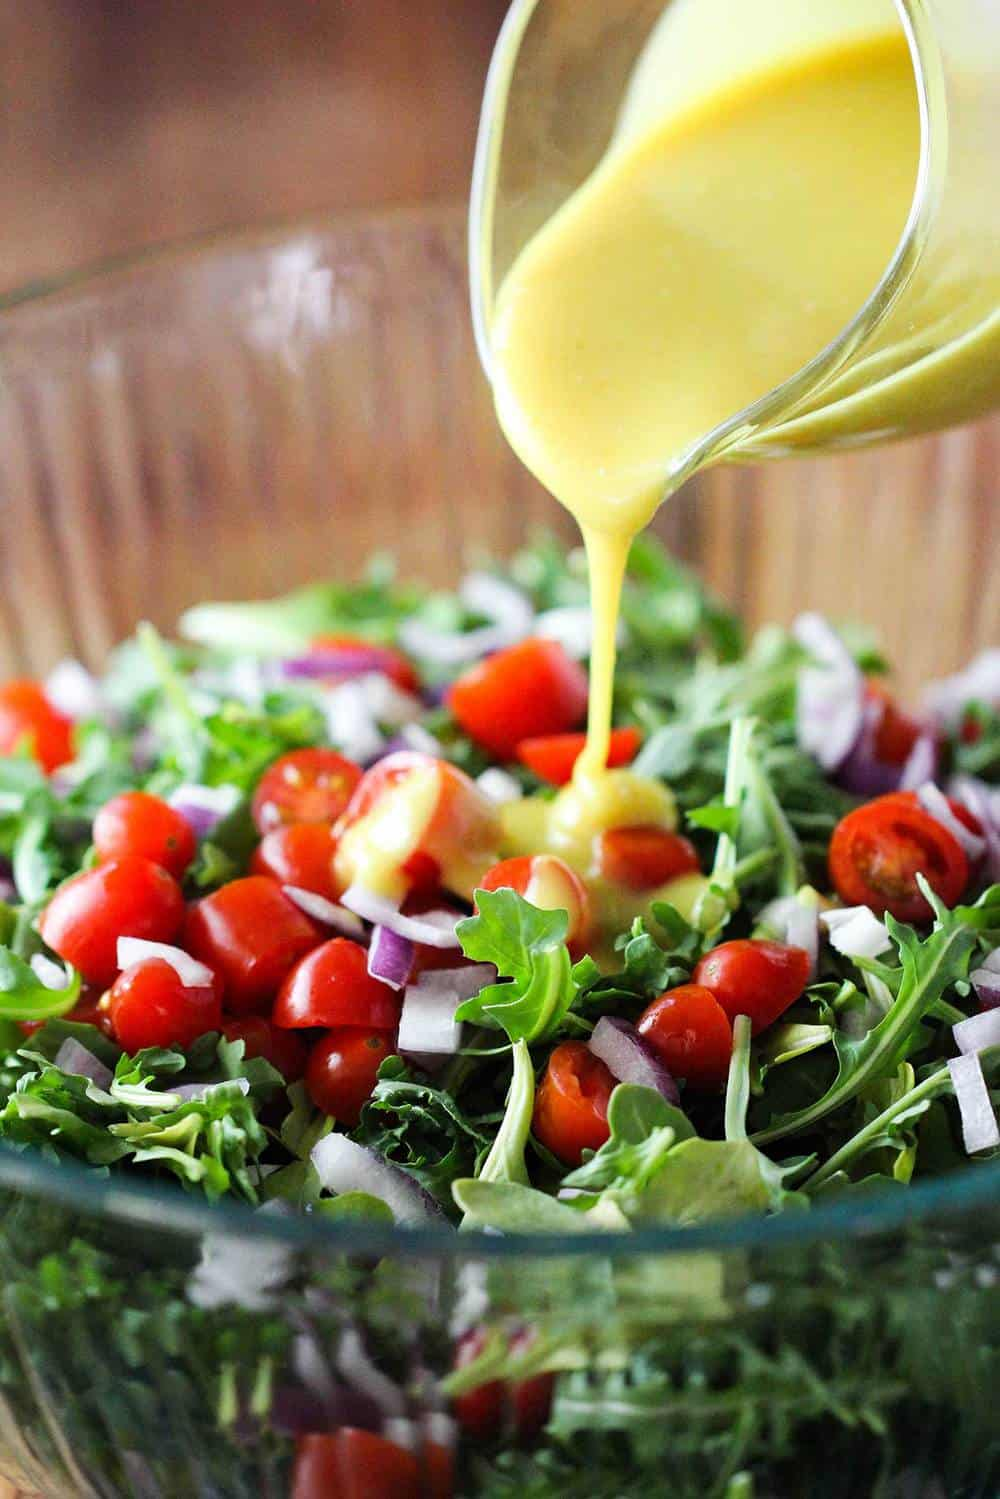 Arugula salad with tomatoes in a glass bowl with vinaigrette being poured over it.